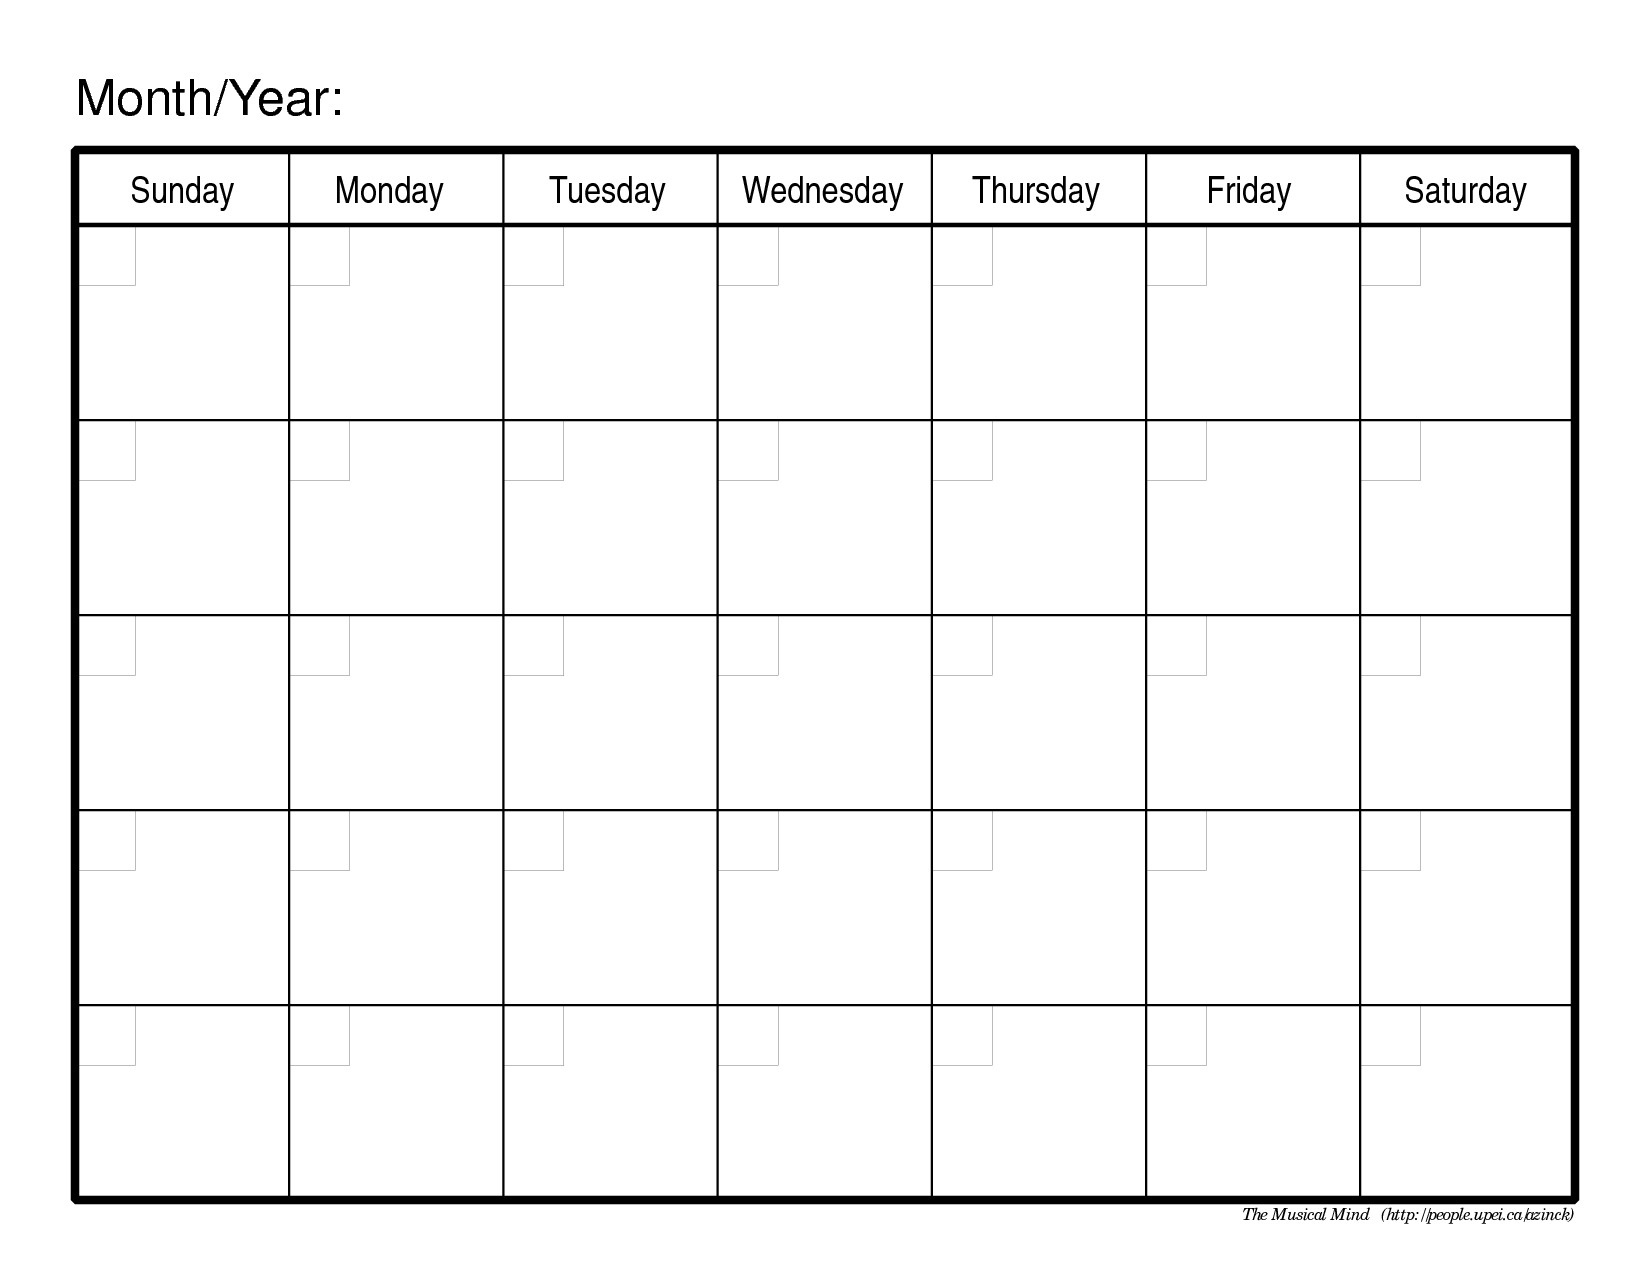 Monthly Schedule Template Monthly Calendar Template Luqkvu Within Calendar Template Schedule Monthly